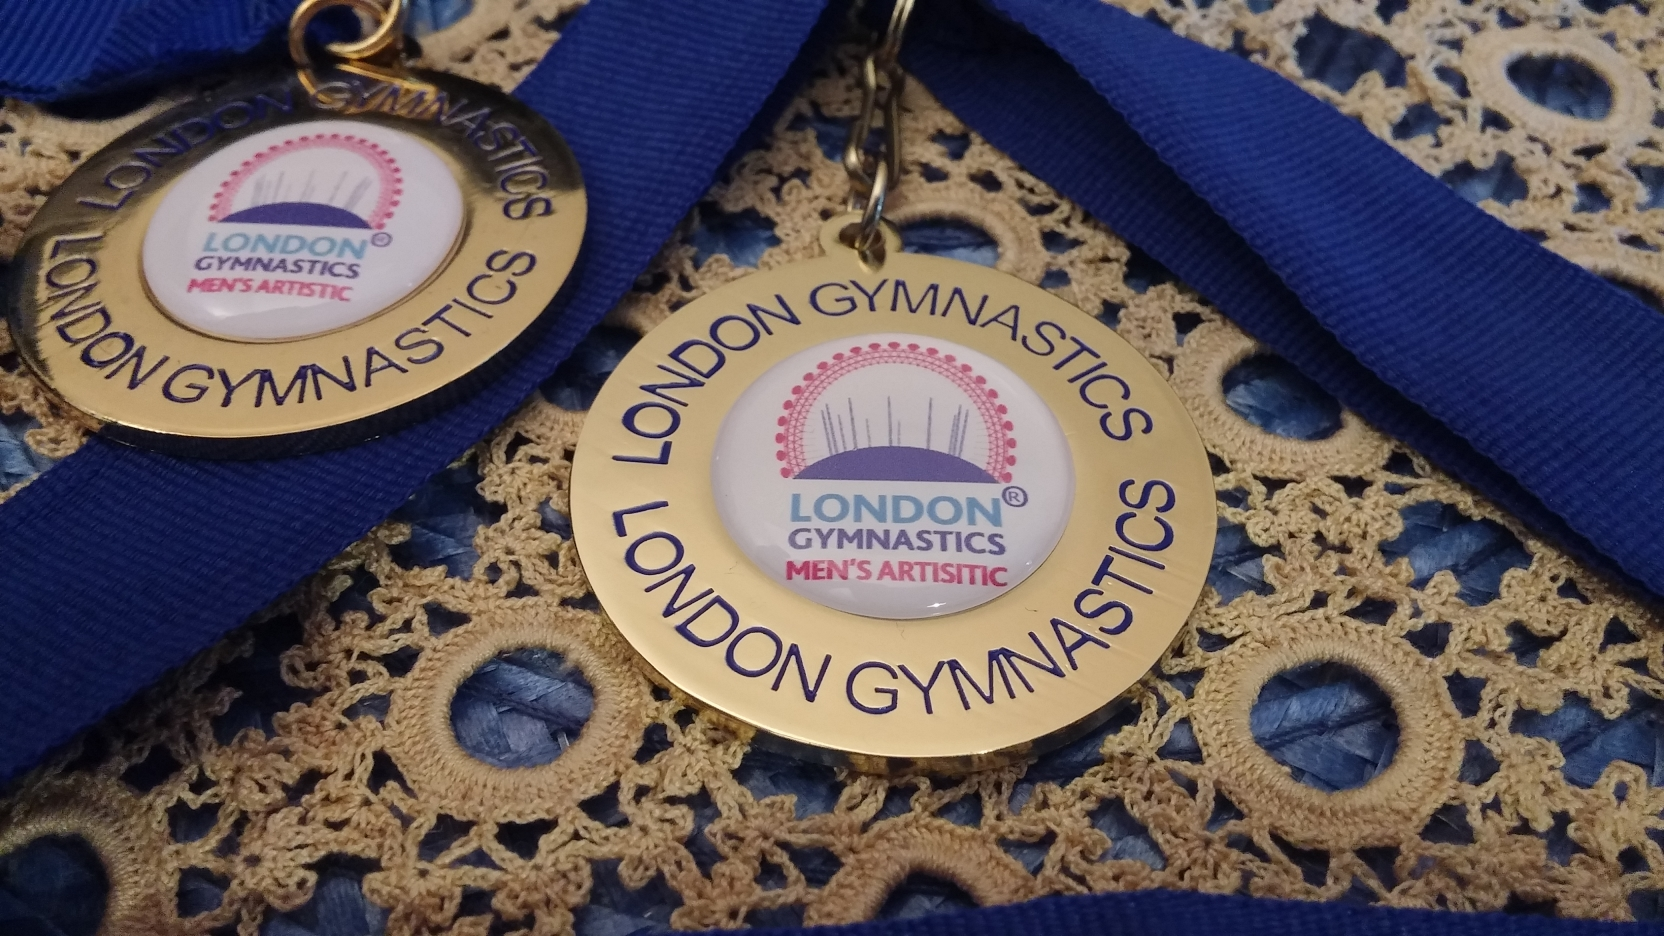 Here are the two Gold medals from the 2015 and 2016 london Regional Challenge